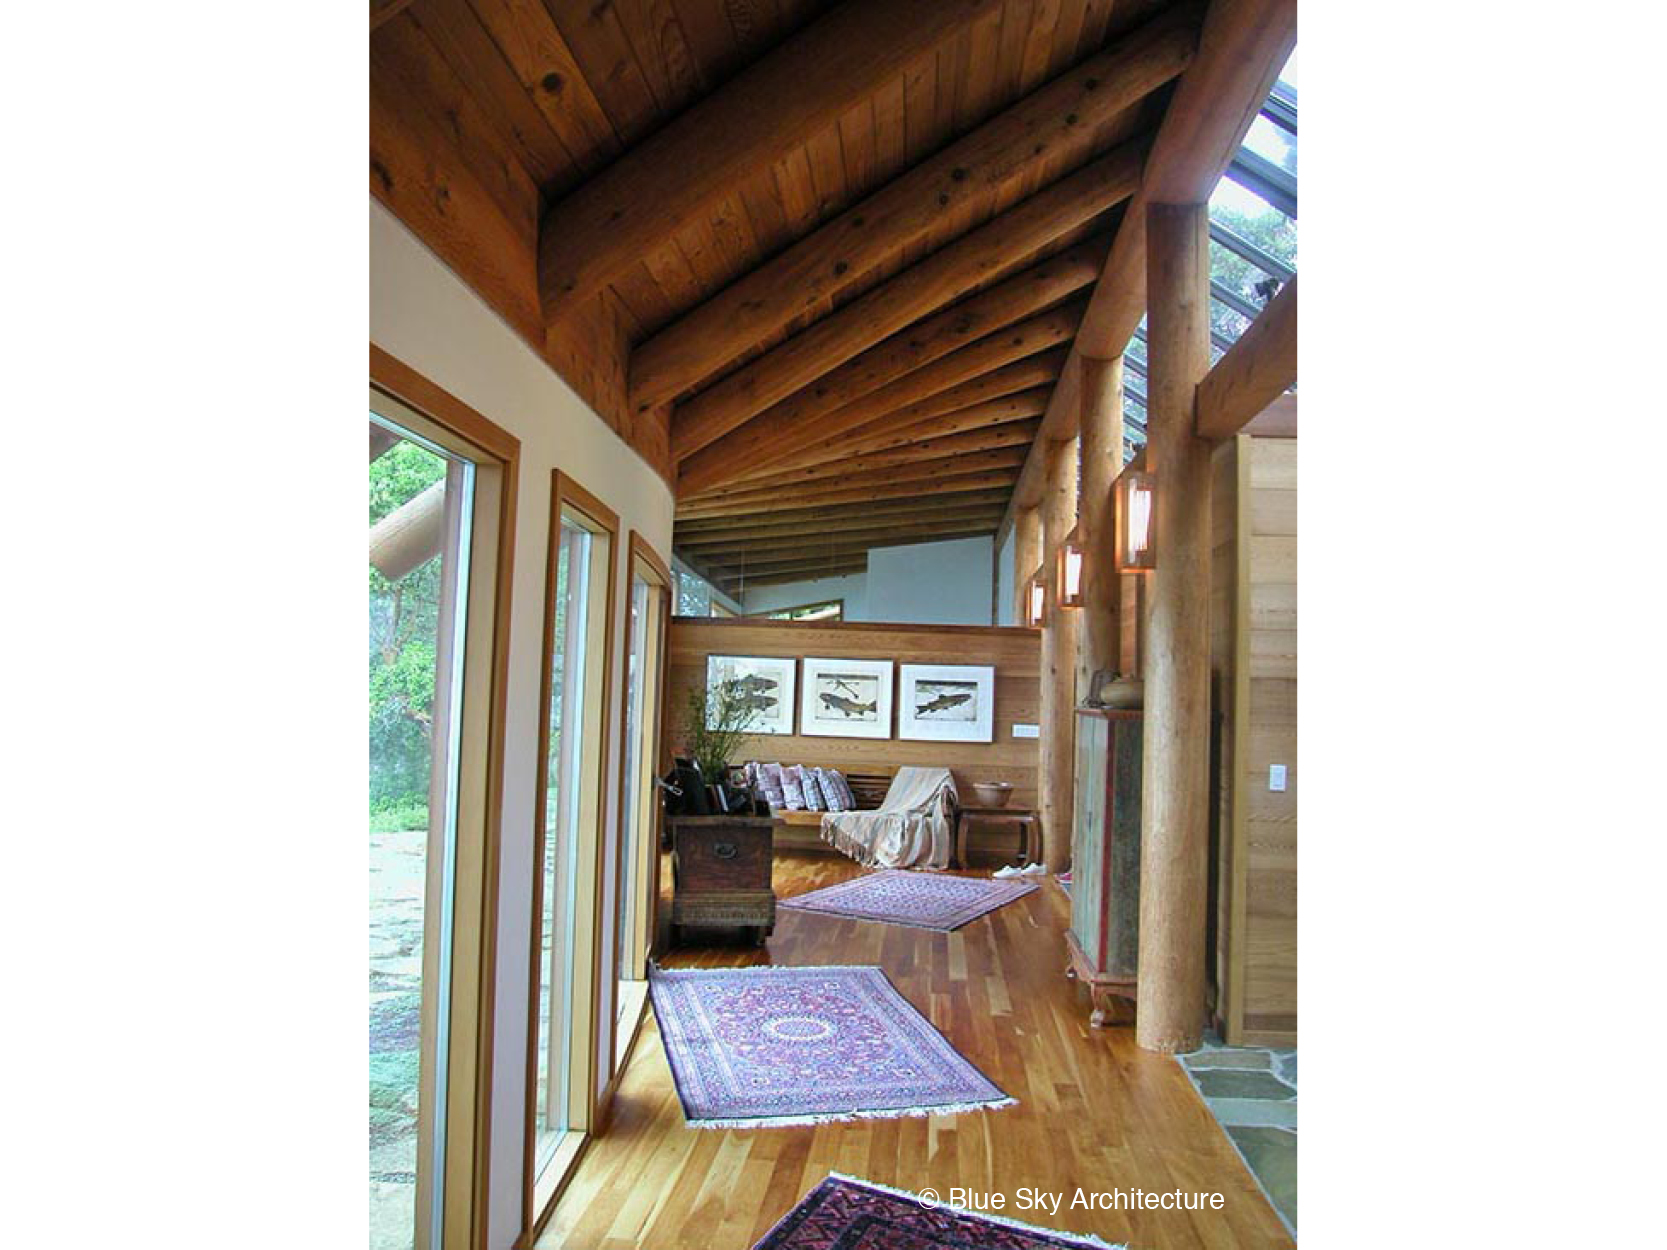 Hallways with Natural Log Rafters